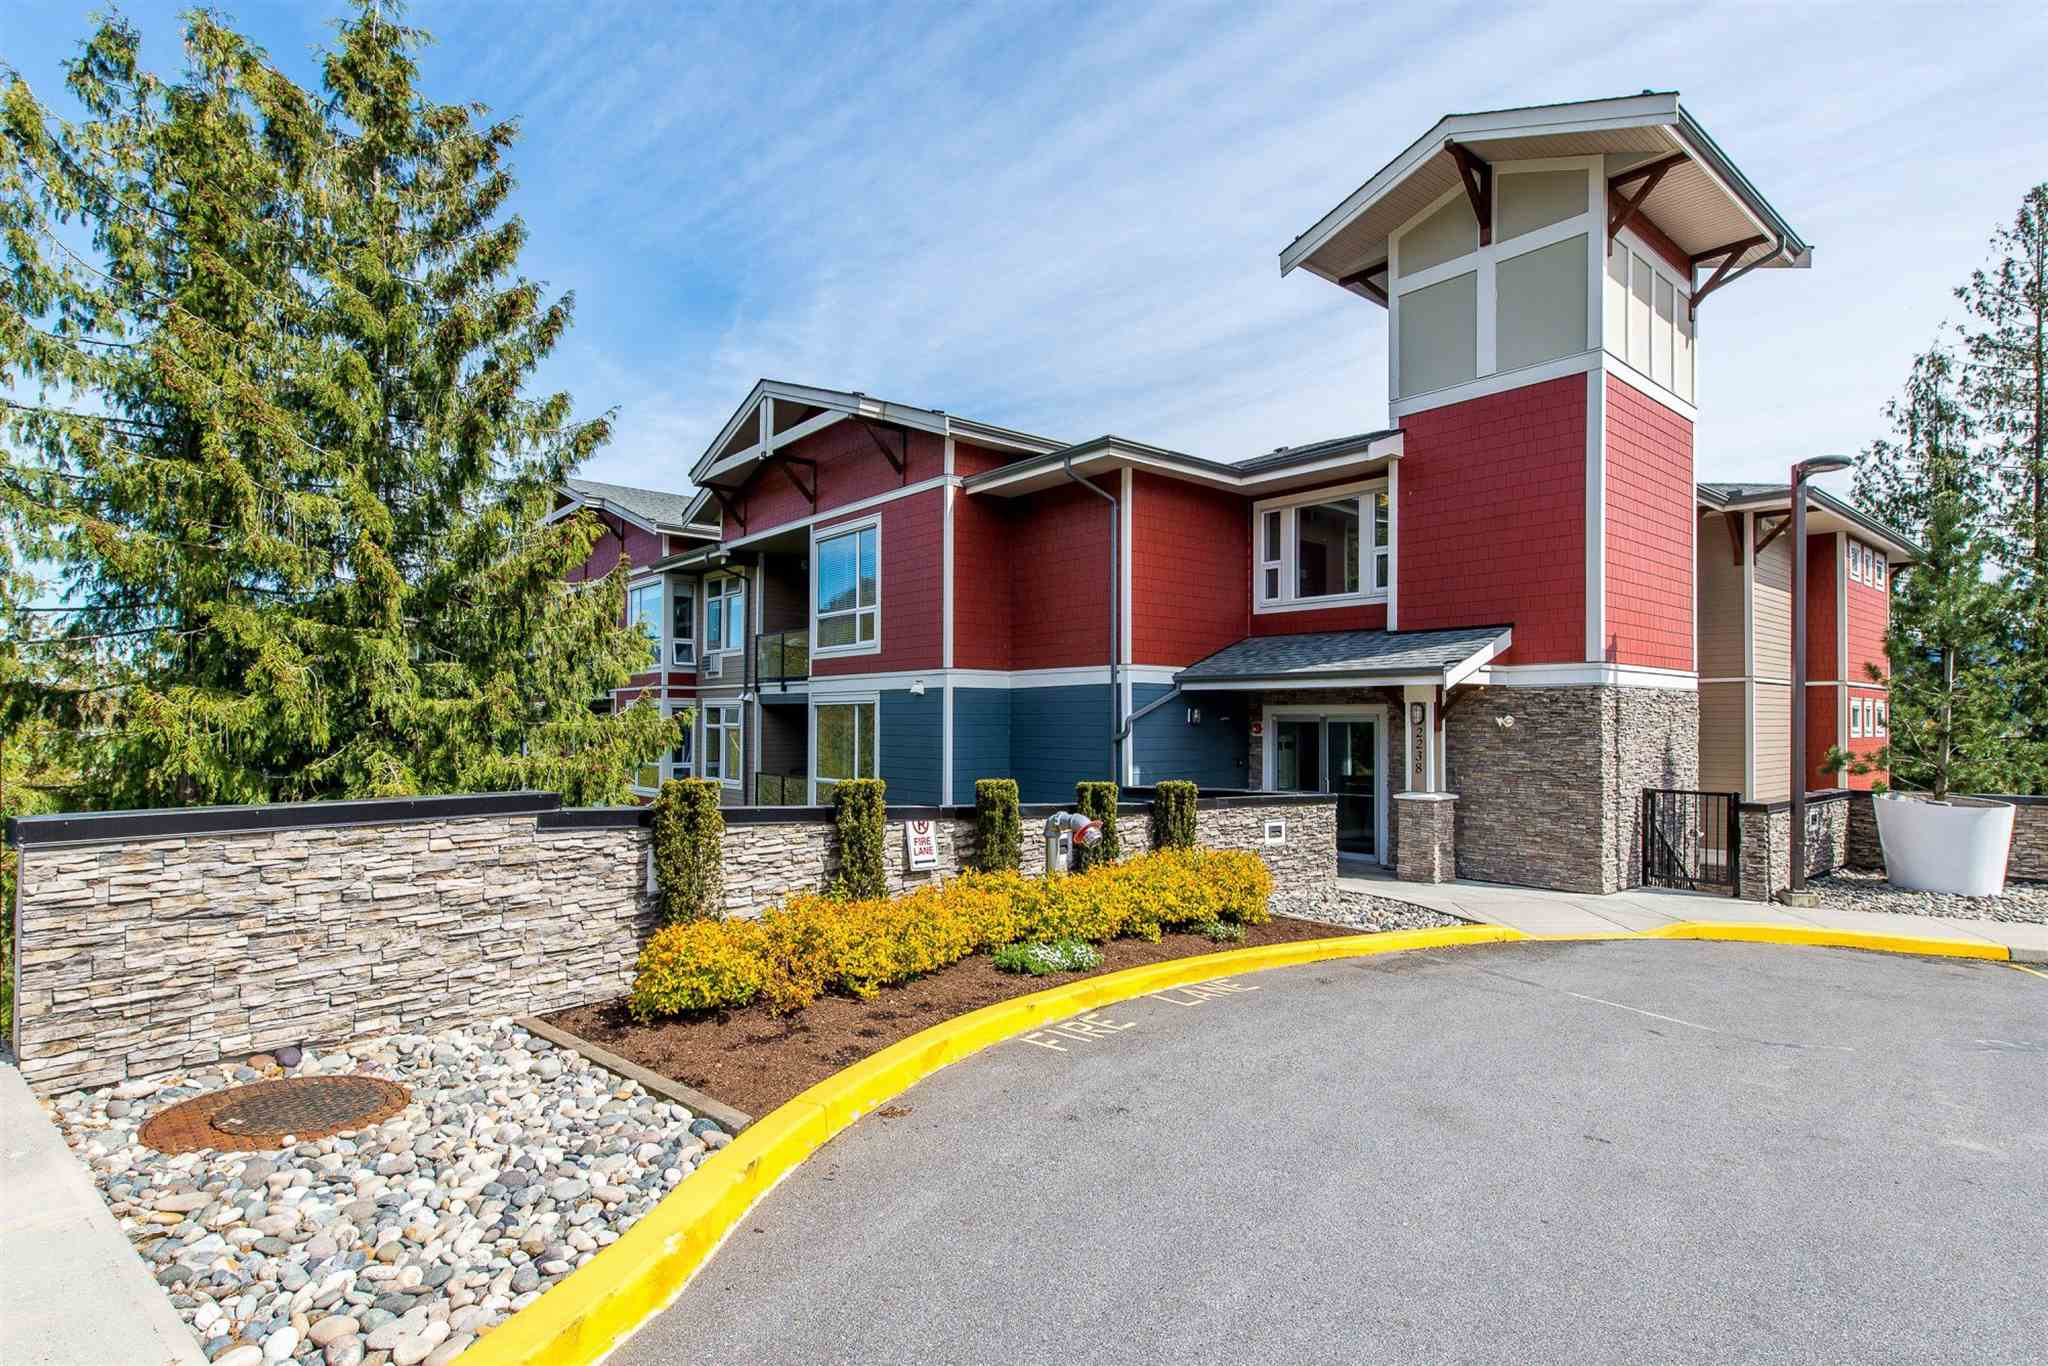 107 2238 WHATCOM ROAD - Abbotsford East Apartment/Condo for sale, 2 Bedrooms (R2604974) - #1